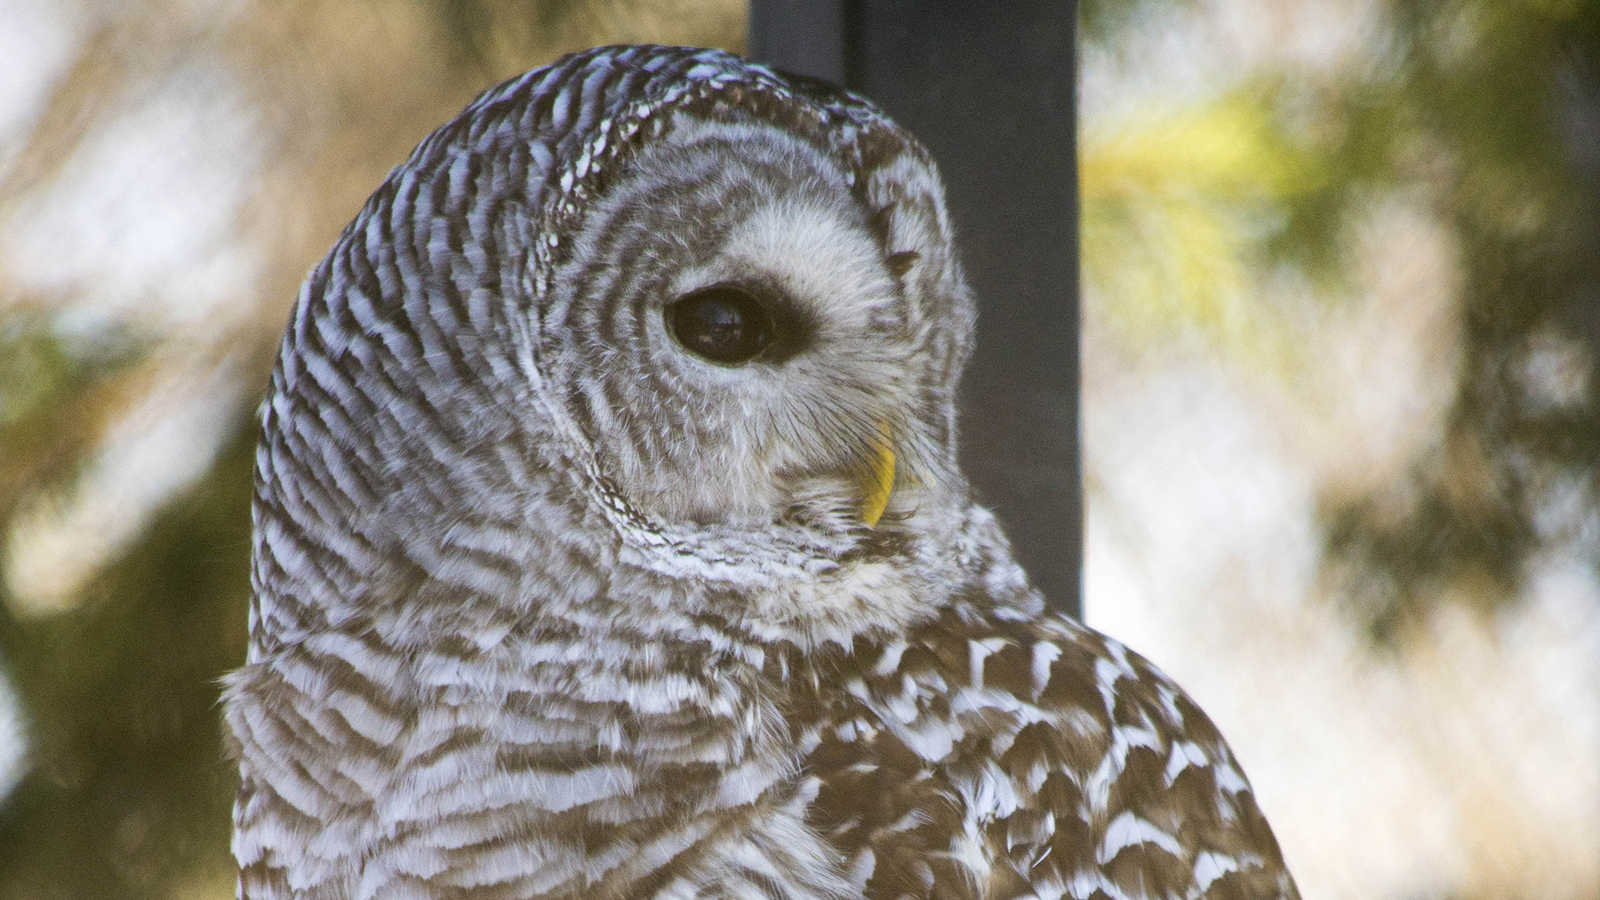 side profile of the Barred owl